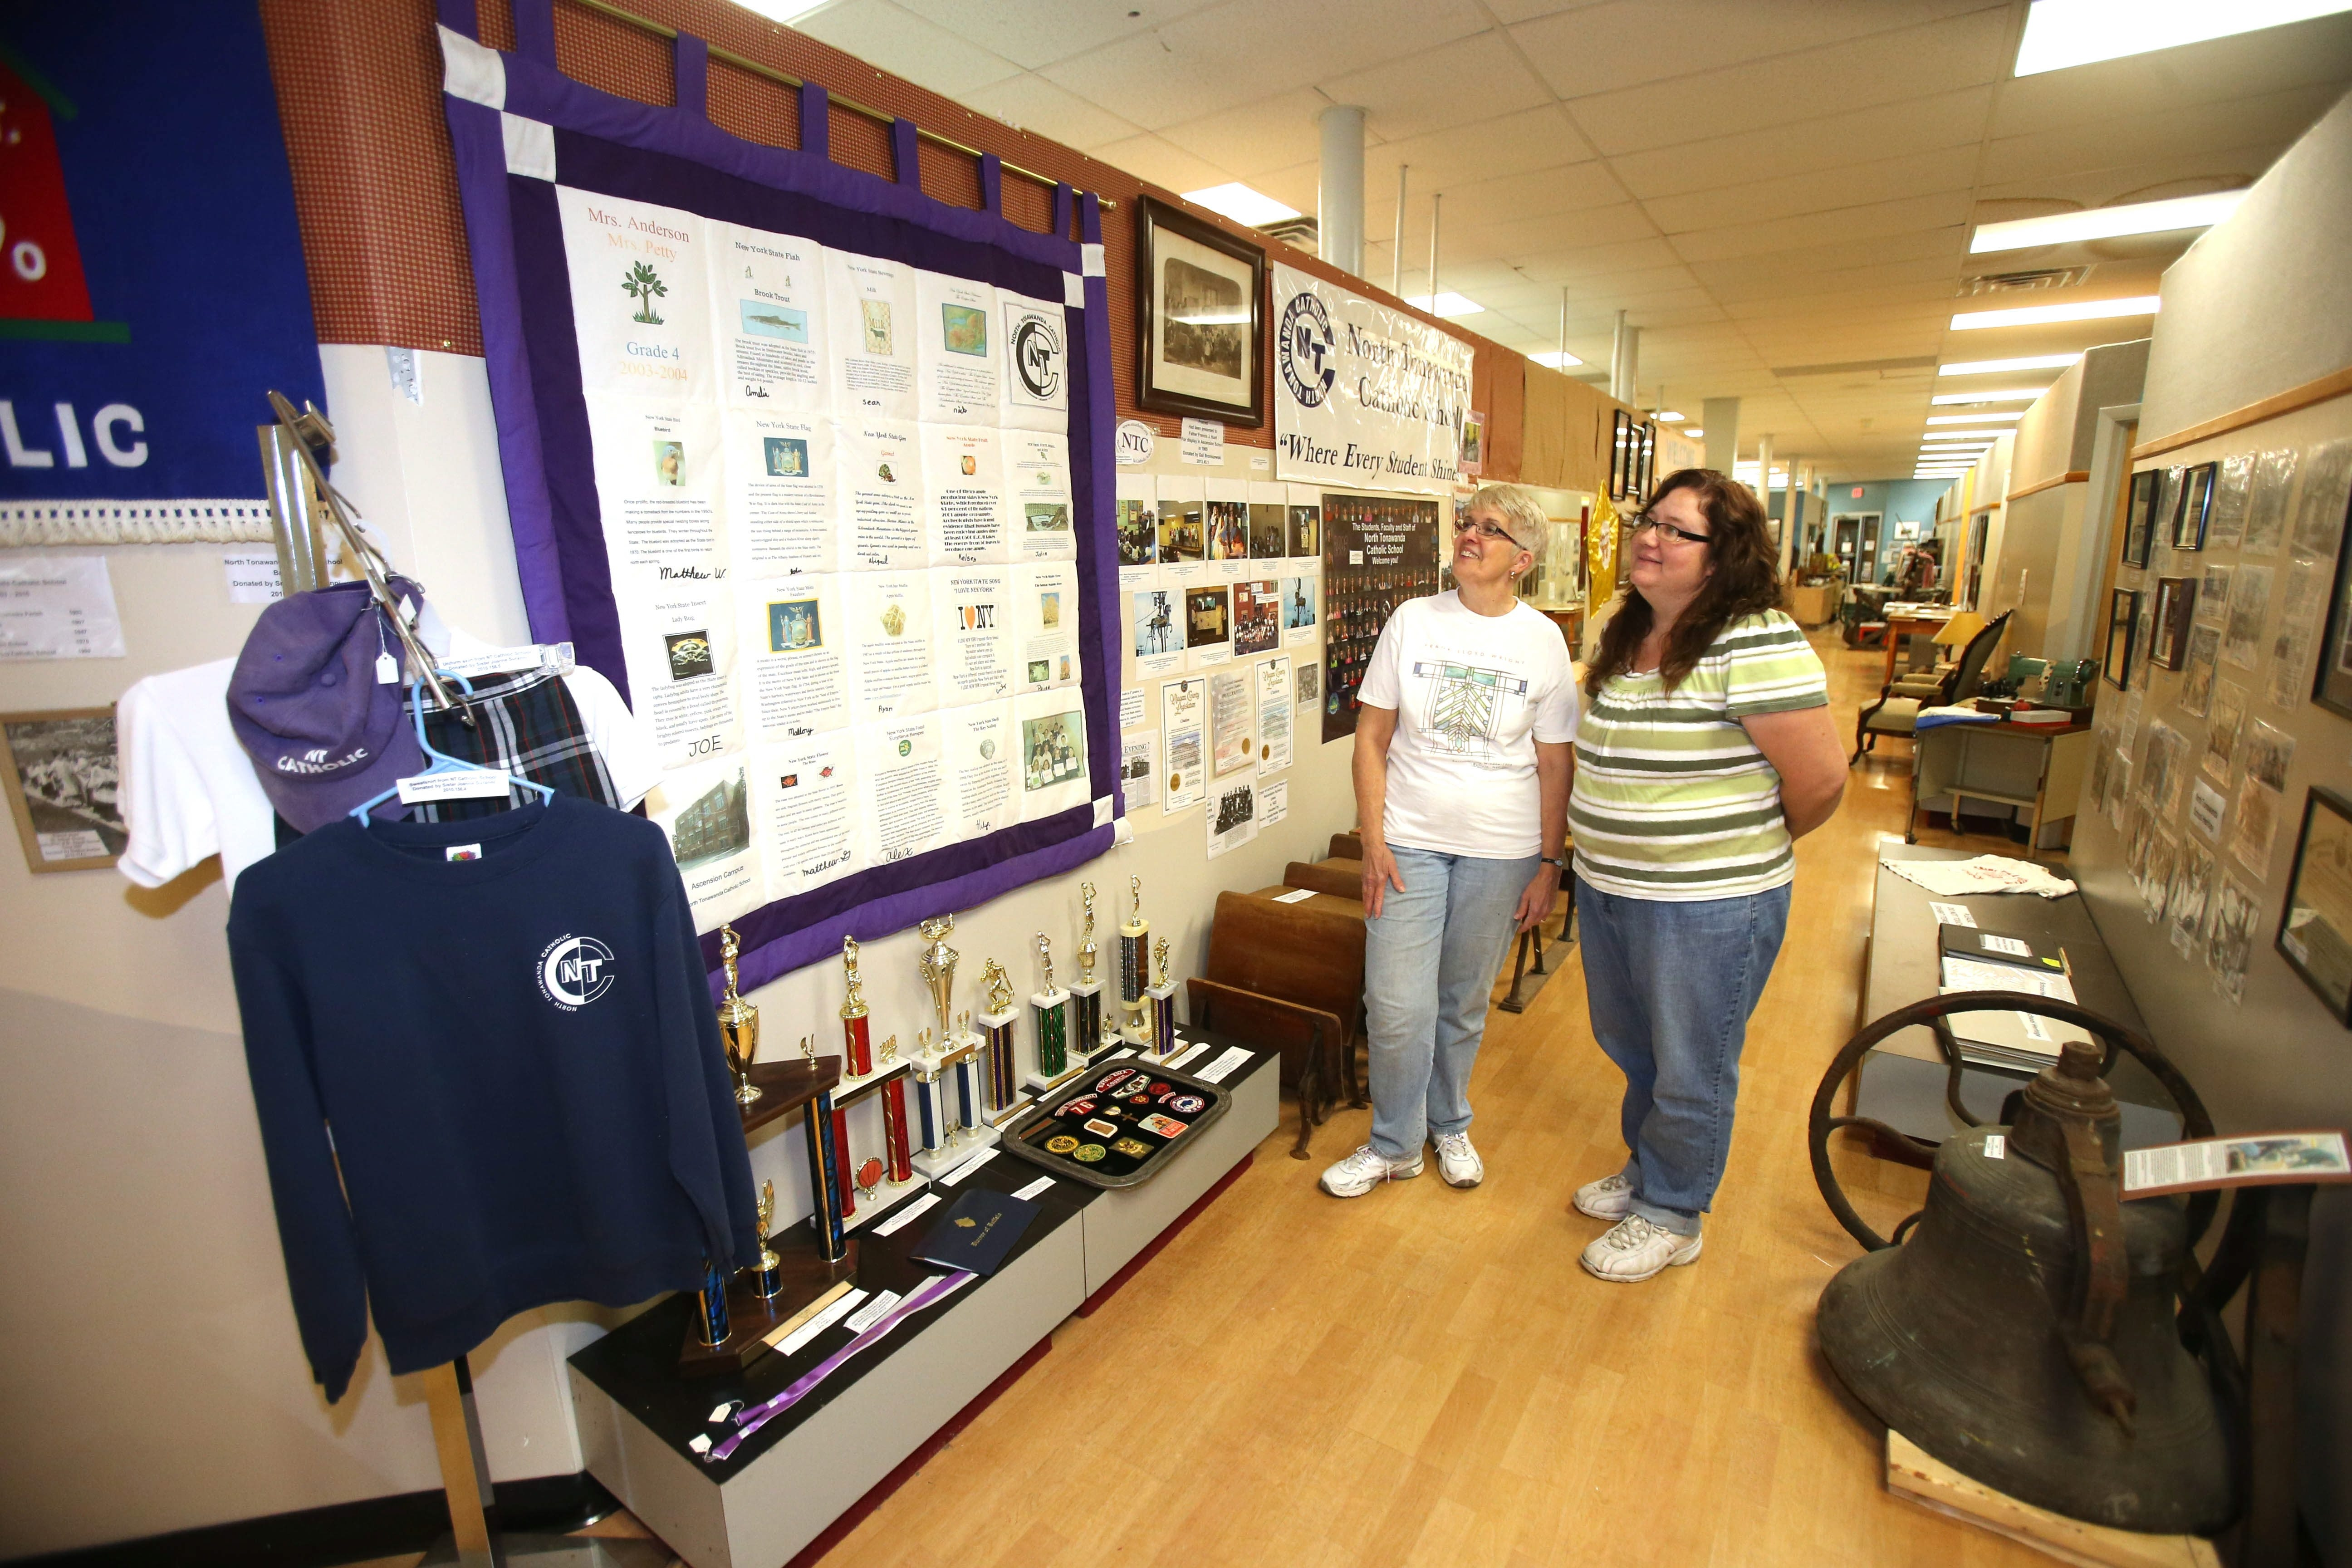 Volunteers Marg Bauza, left, and Penny Buterbaugh-Naimi admire the new dedicated display of North Tonawanda schools they just finished at the Webster Street museum.